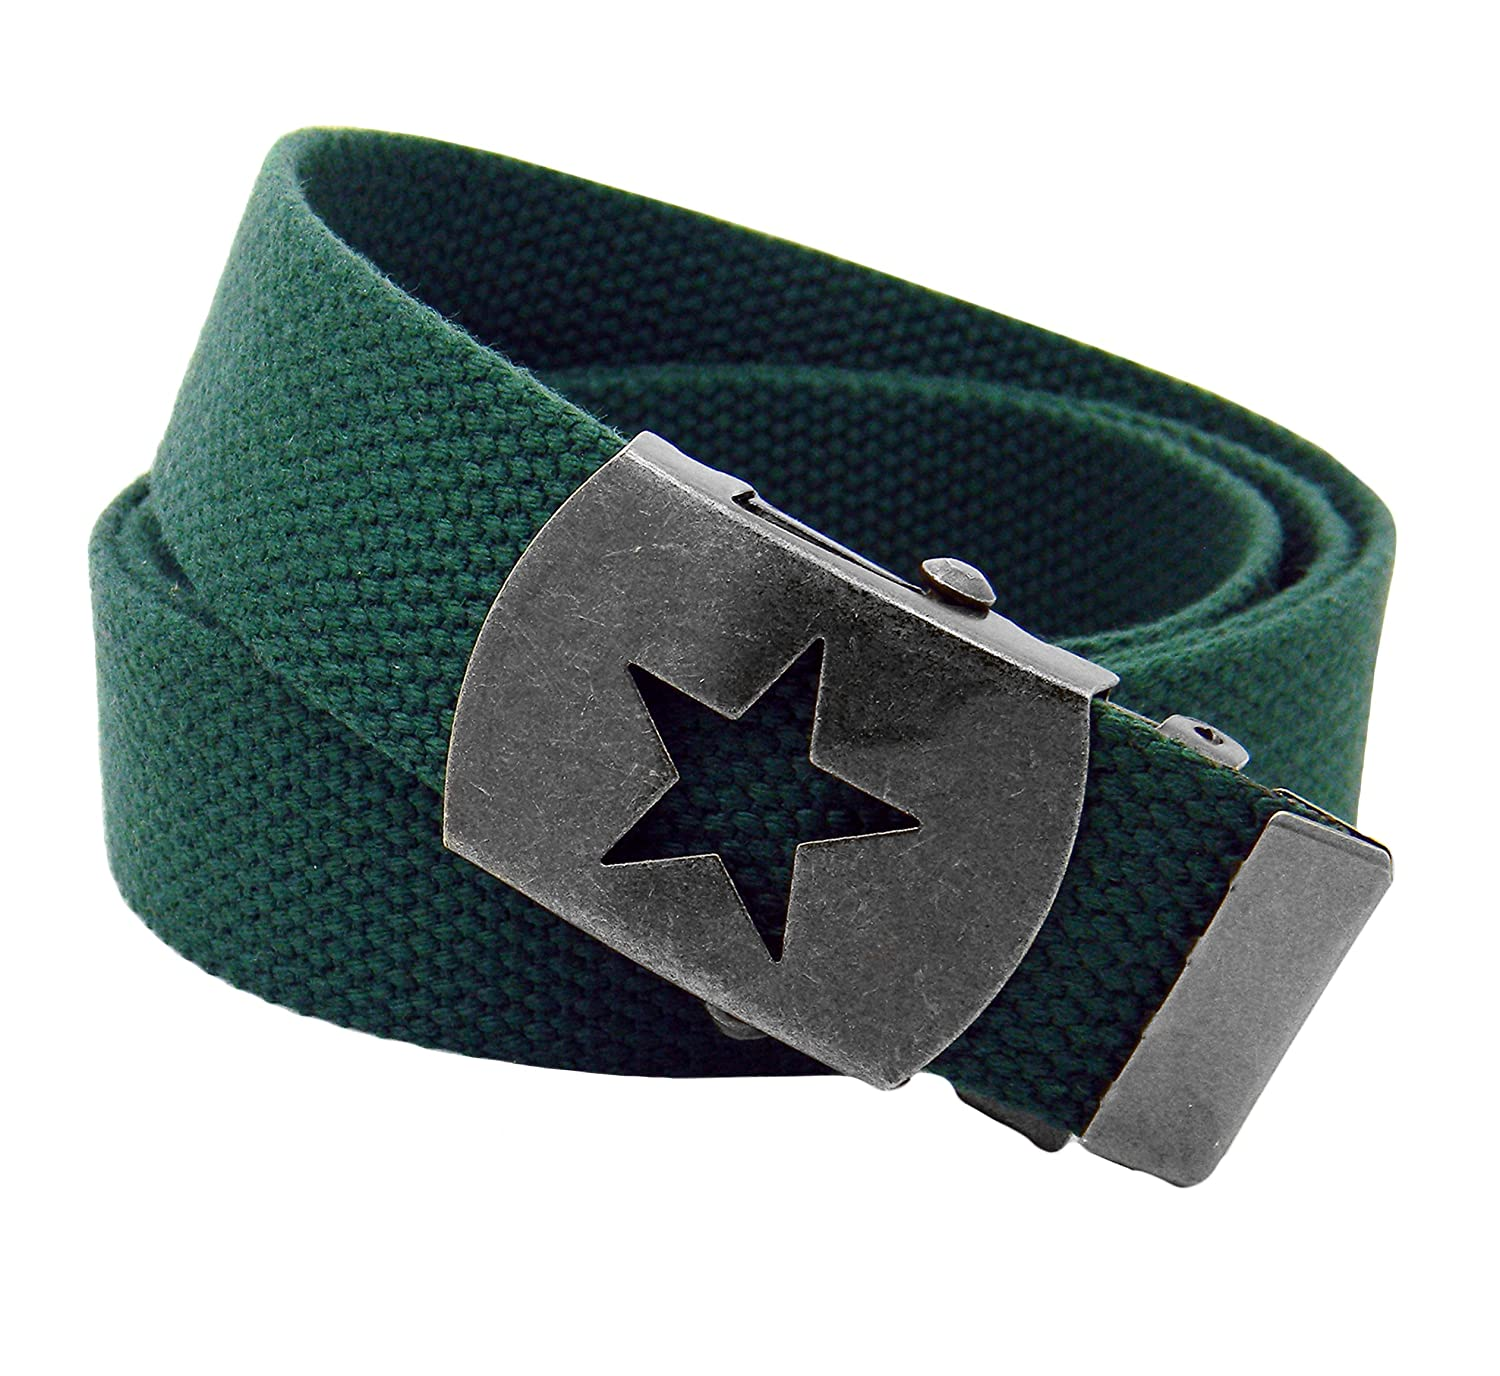 Boys Uniform Distressed Silver Star Slider Military Belt Buckle with Canvas Belt 9402-GM-$P